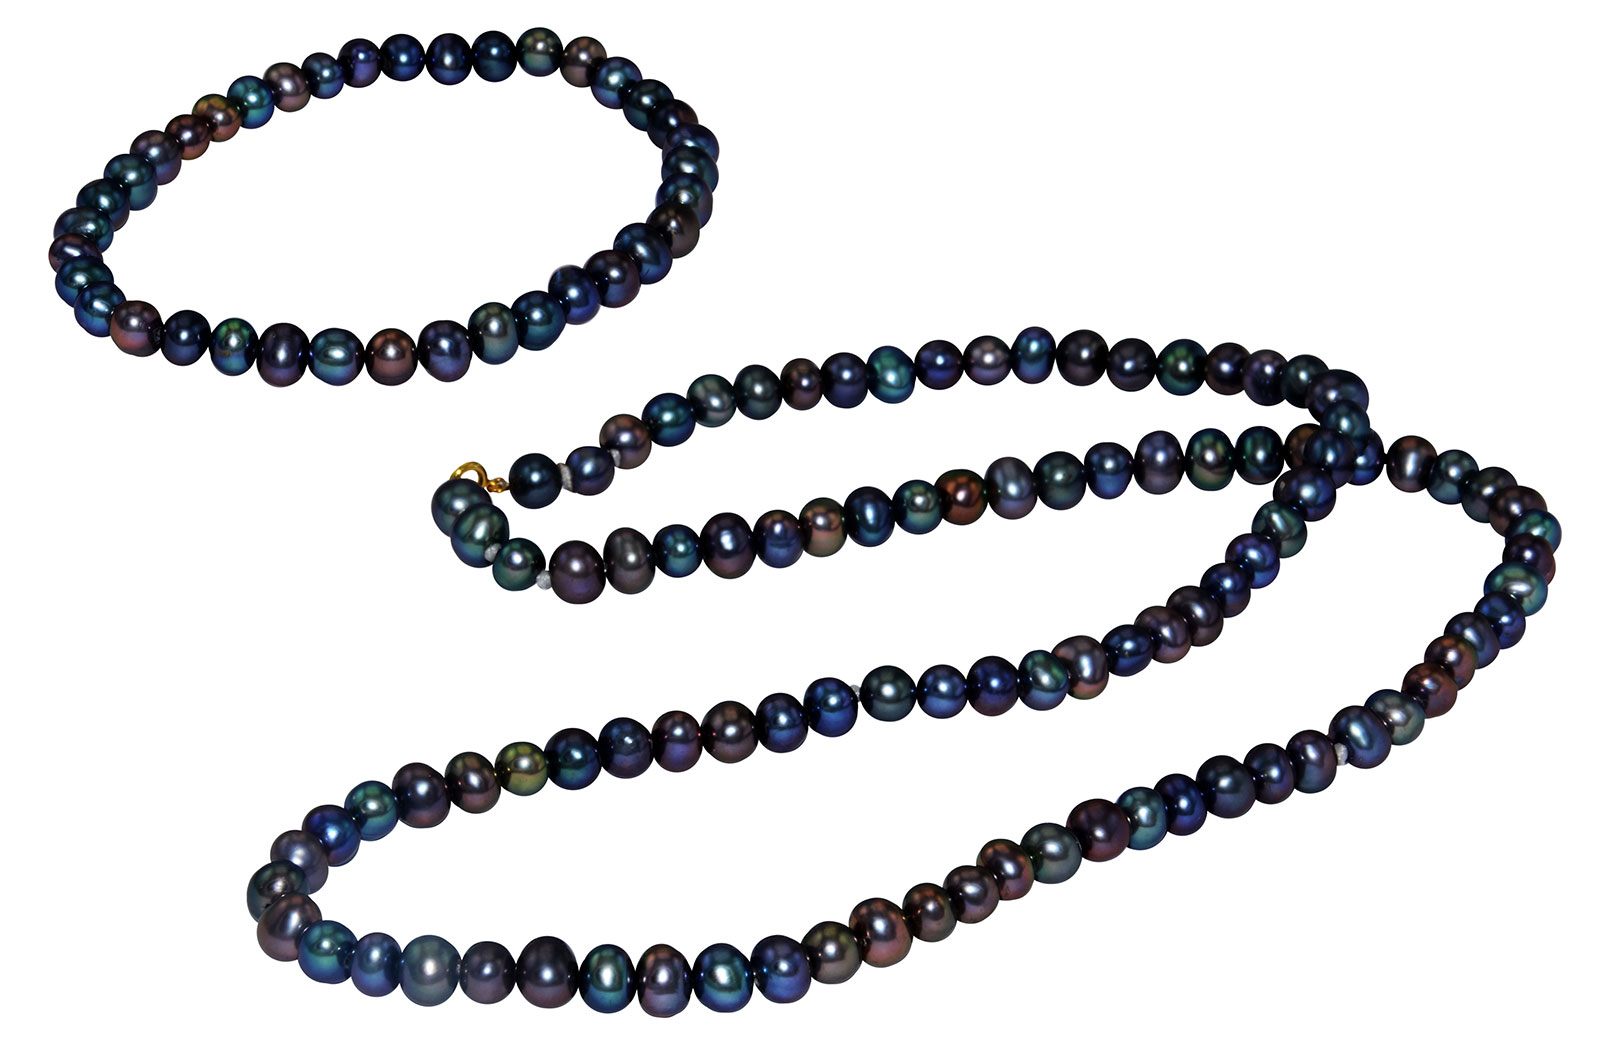 Vera Perla 10K Gold 4-5mm Black Pearl Strand Necklace & Elastic Bracelet